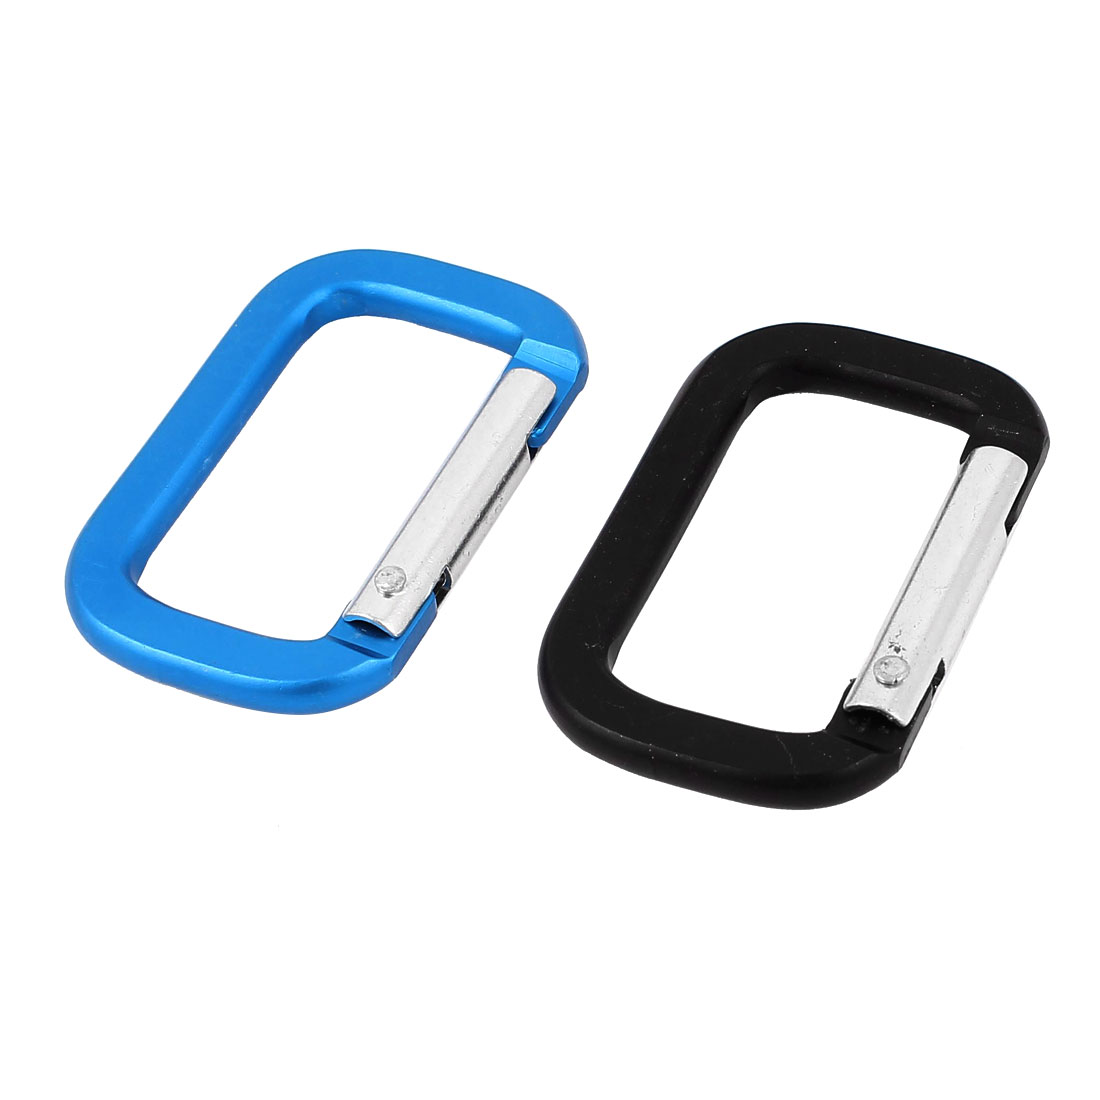 Camping Hiking Rectangle Carabiner Clip Spring Snap Hook Keyring Karabiner 2pcs Black Blue